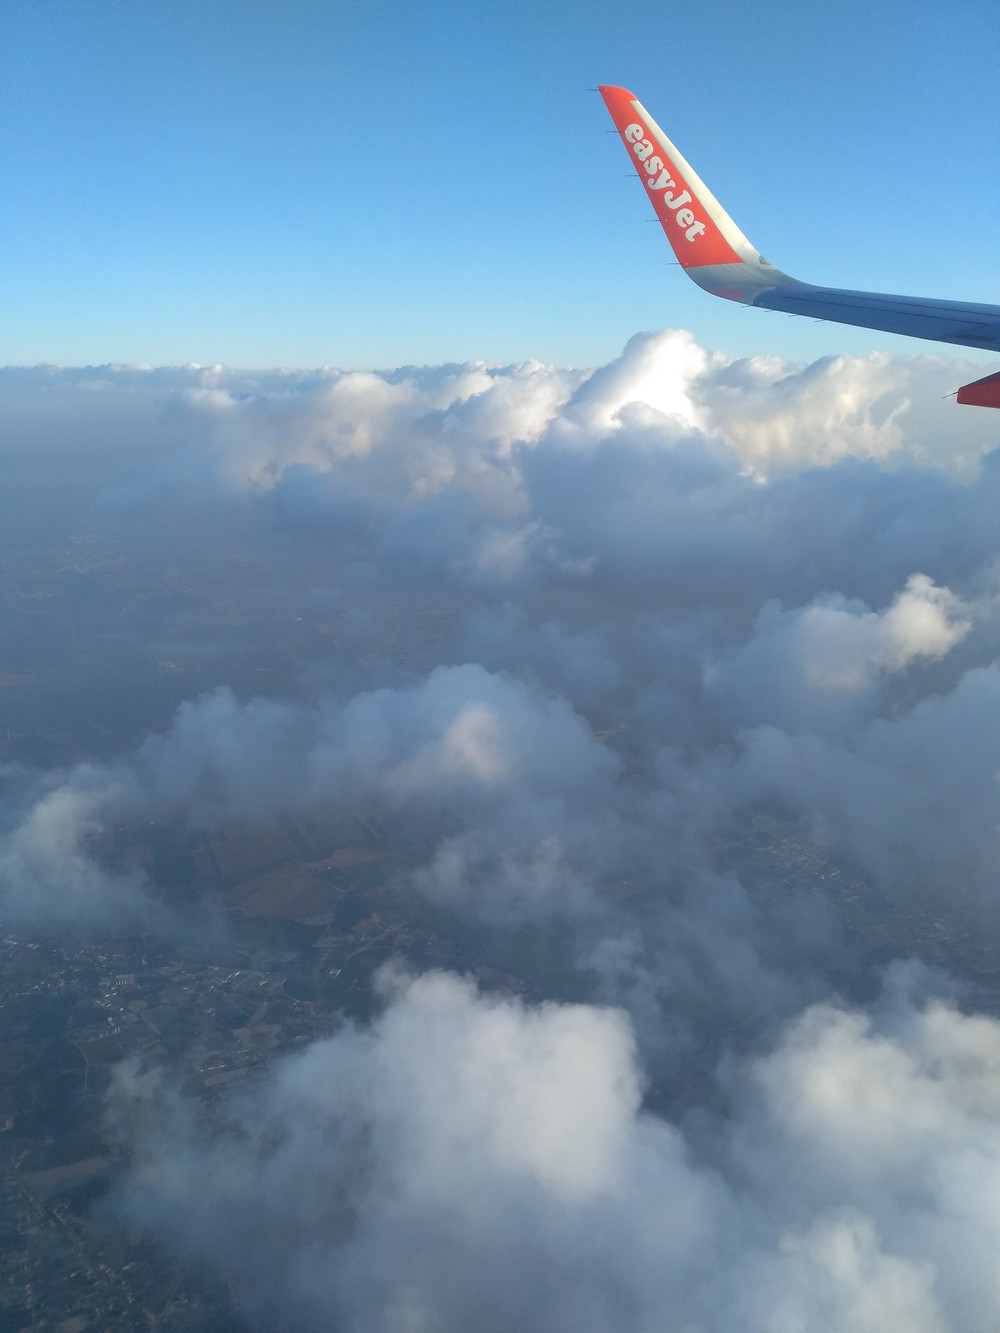 Clouds from easyJet plane